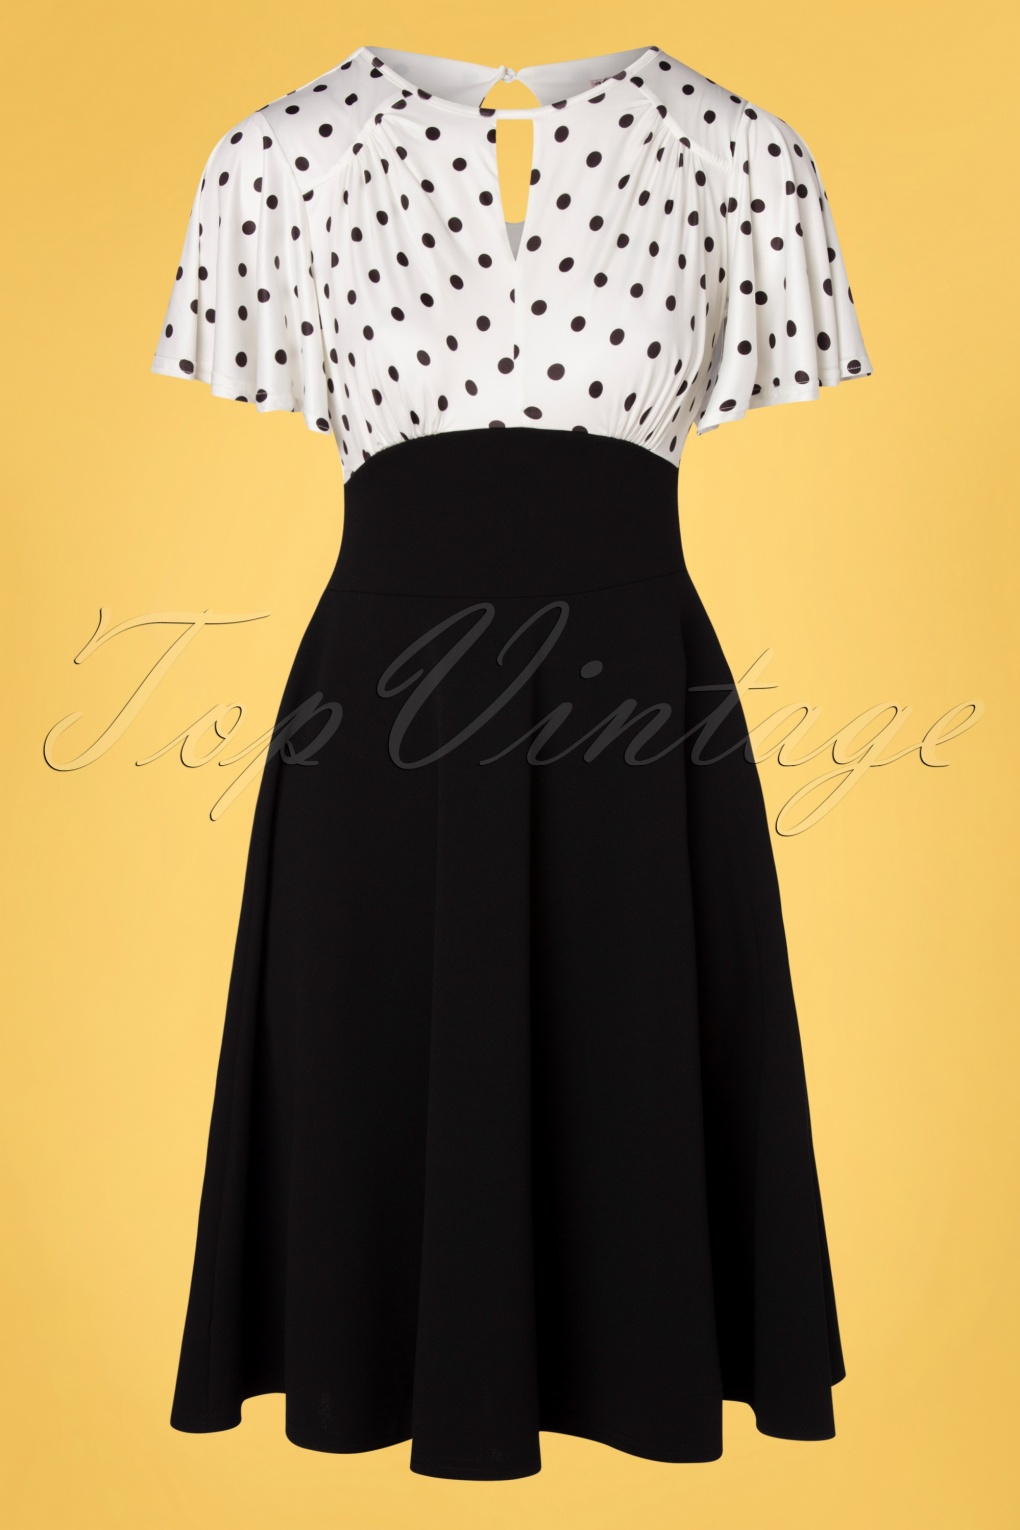 1950s Dresses, 50s Dresses | 1950s Style Dresses 50s Nina Polkadot Swing Dress in Black and Ivory £58.83 AT vintagedancer.com